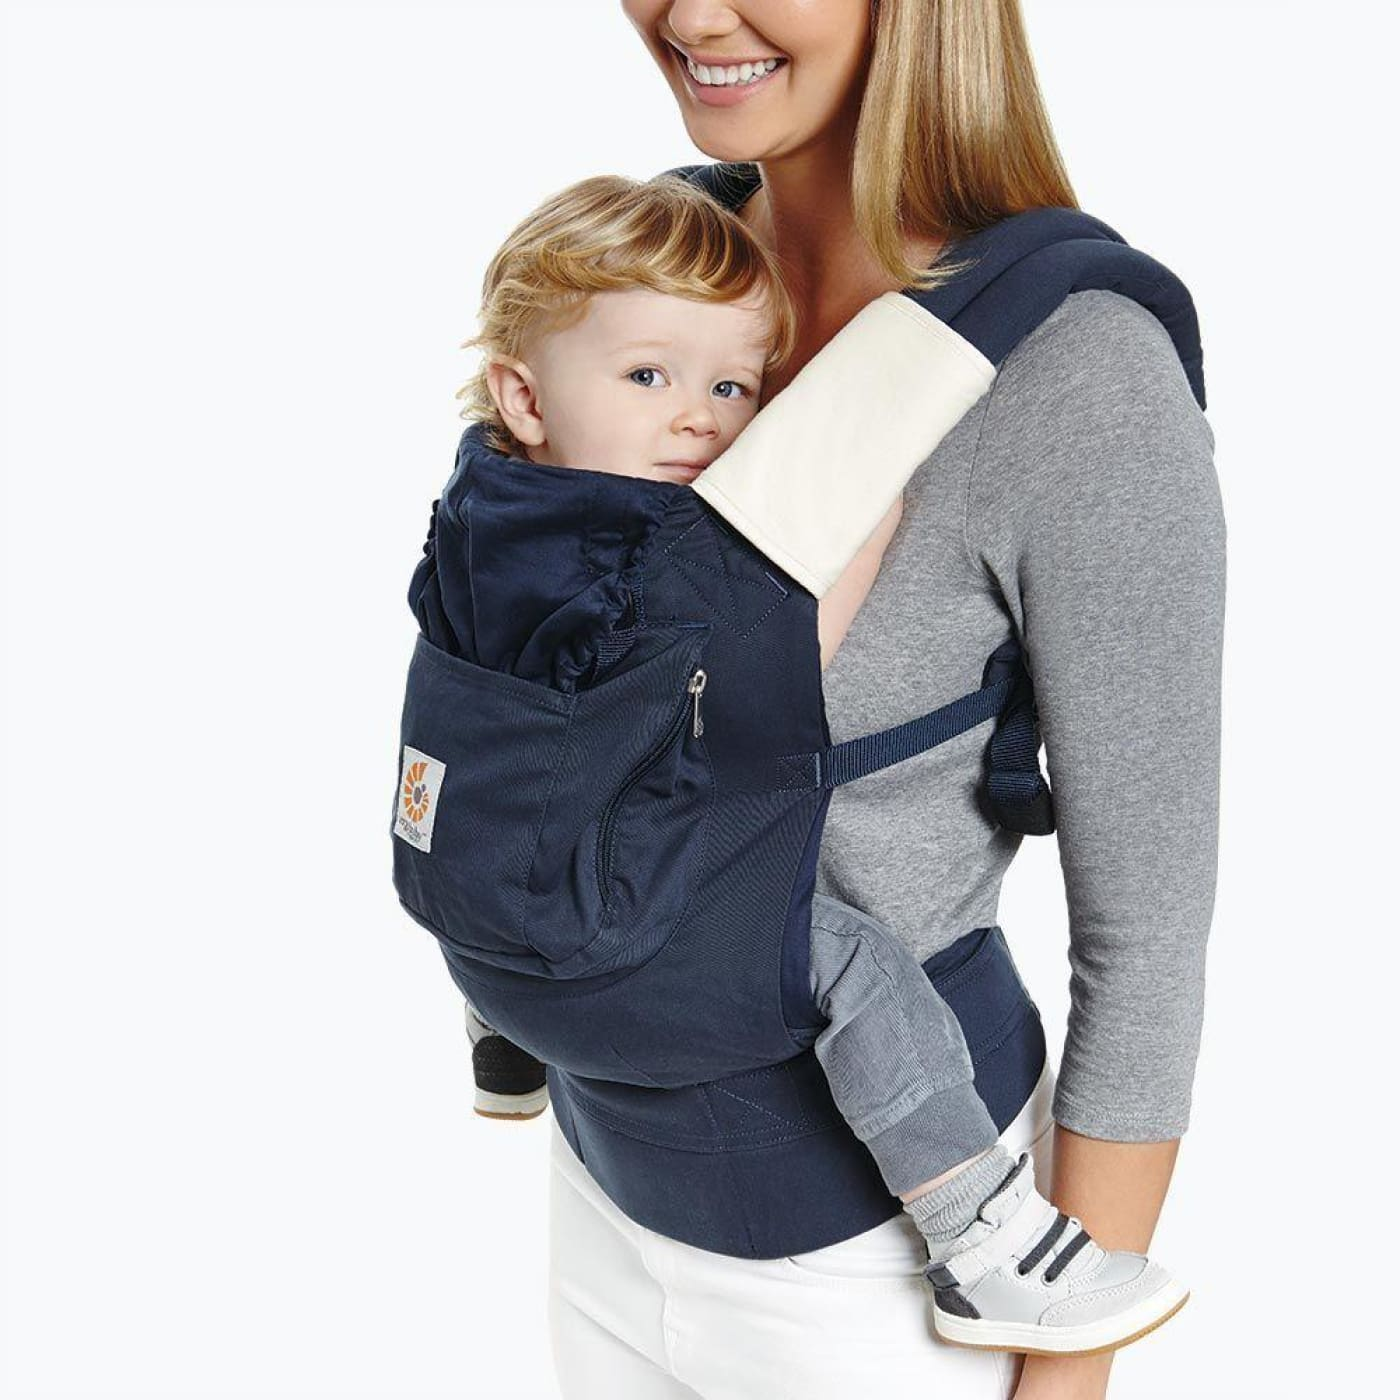 Ergobaby Teething Pads - Natural - ON THE GO - BABY CARRIERS/SLINGS